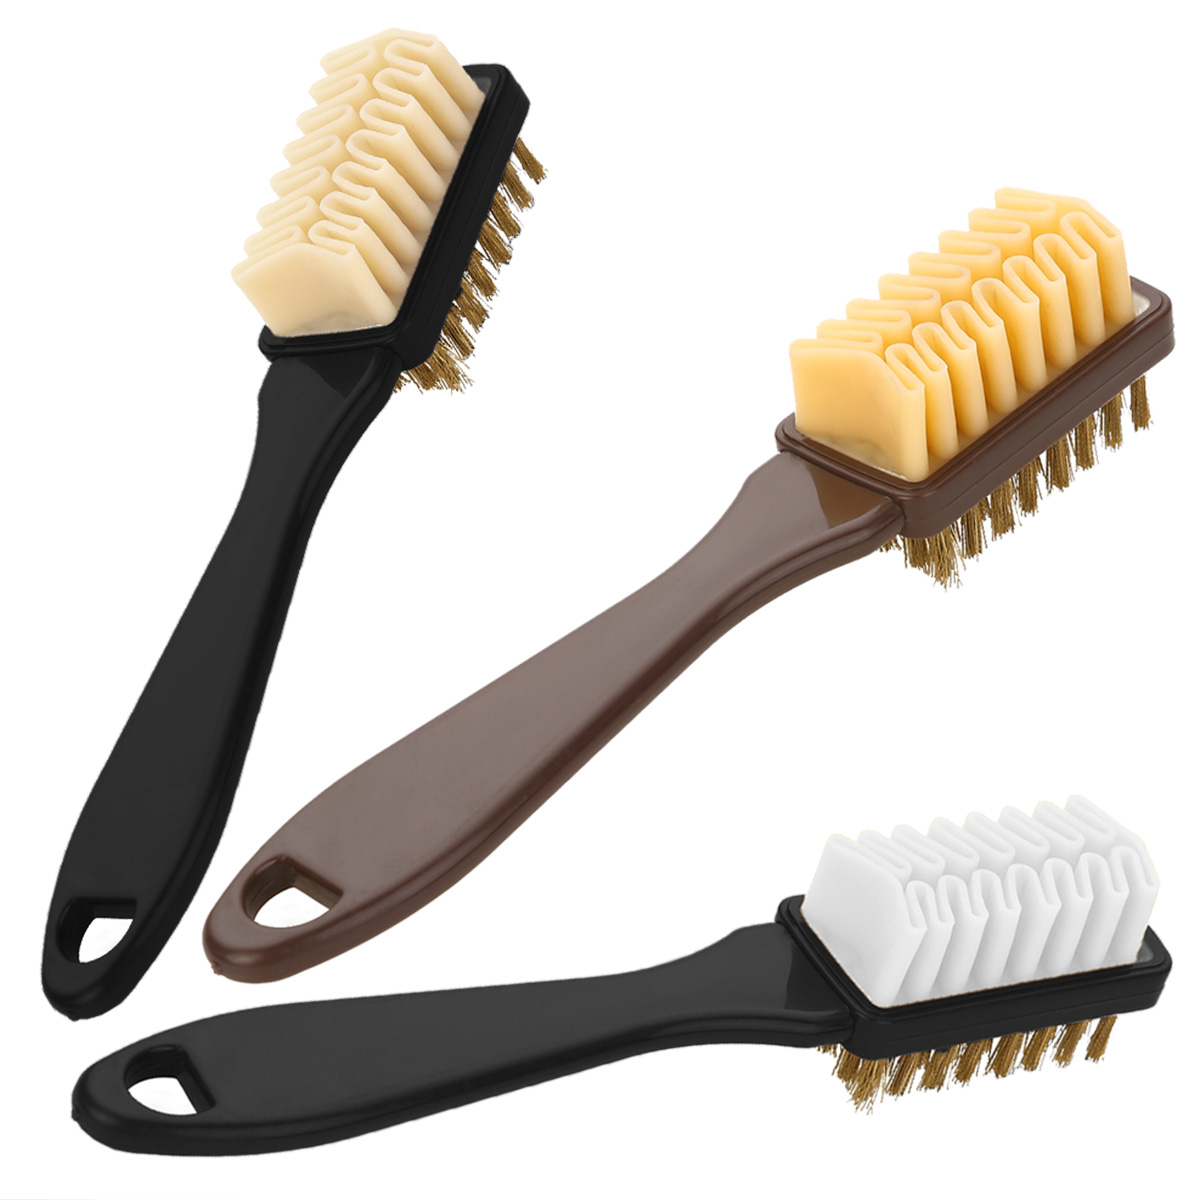 1pc 2-Sided Cleaning Brush With Rubber Eraser Suede Nubuck Shoes Boot Cleaner Set Practical Handbag Brushes